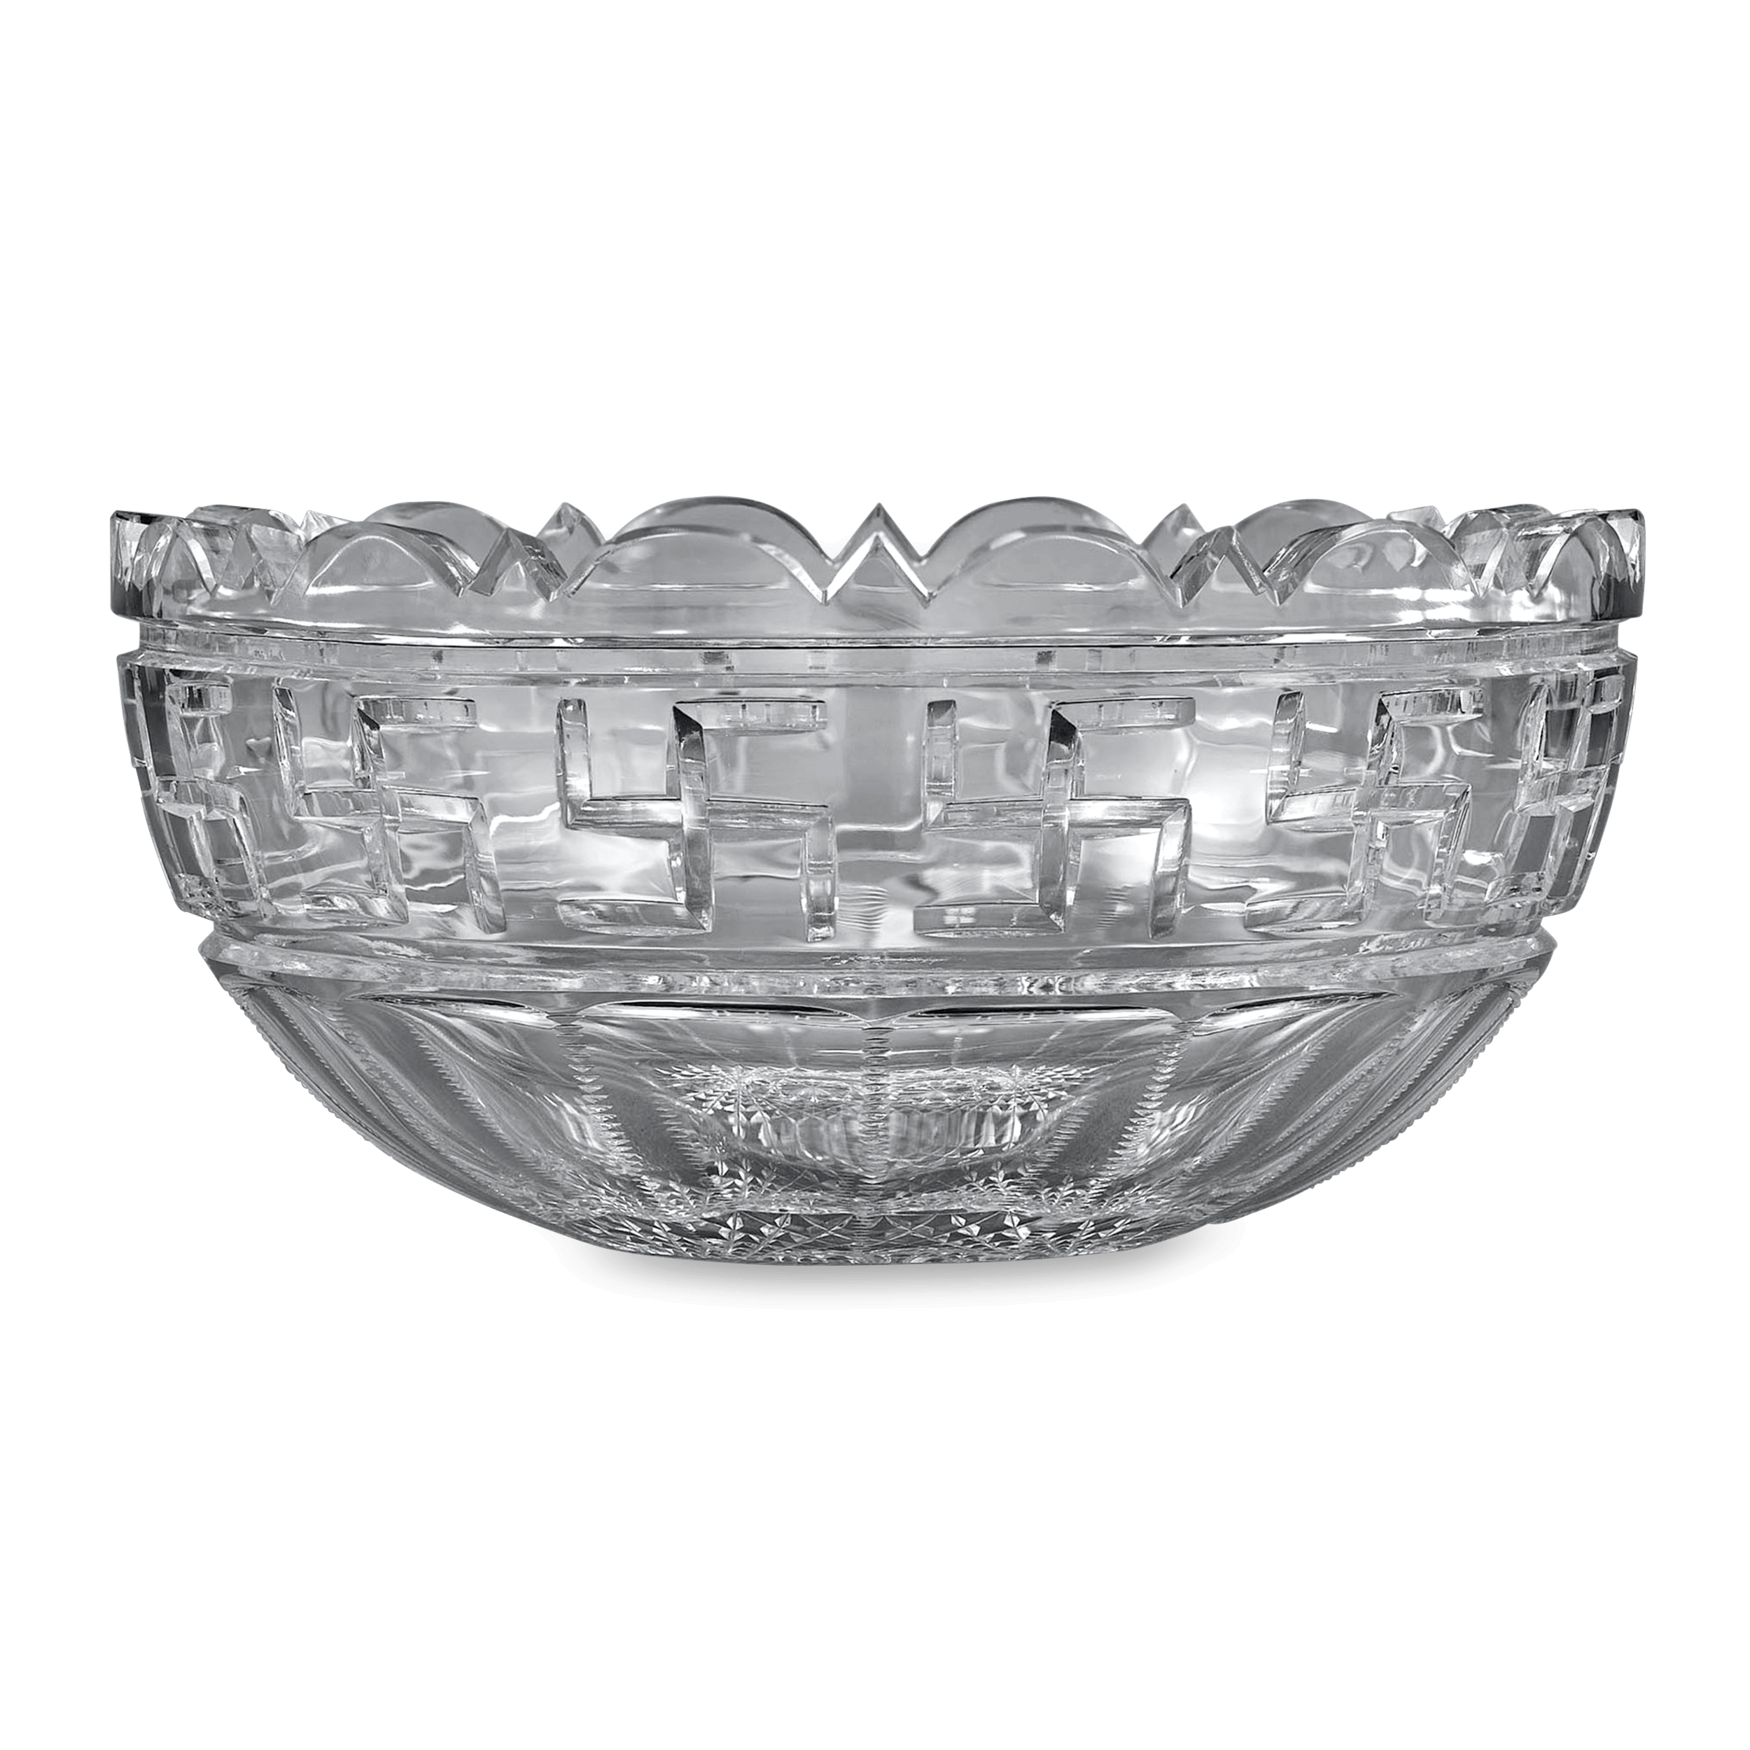 Bowl of punch png. American brilliant cut glass